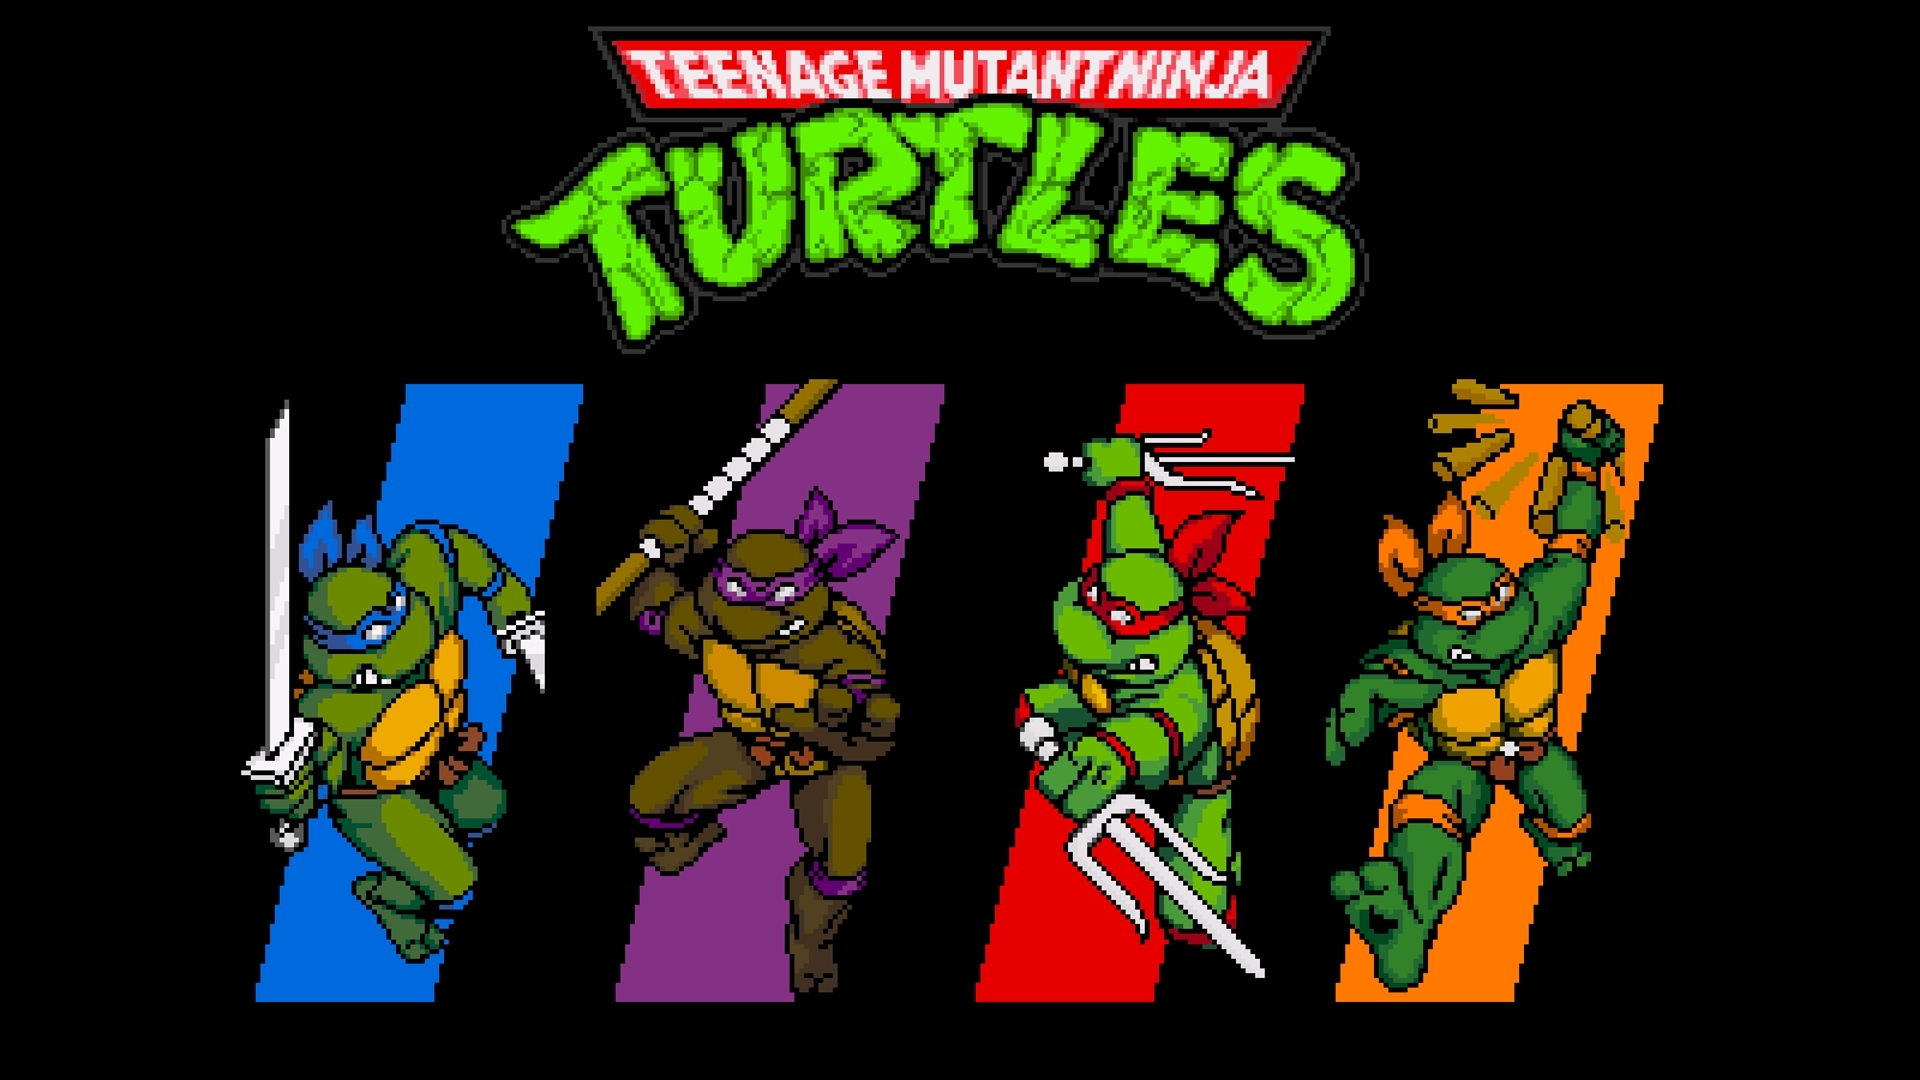 teenage mutant ninja turtles hd wallpaper | 1920x1080 | id:59027